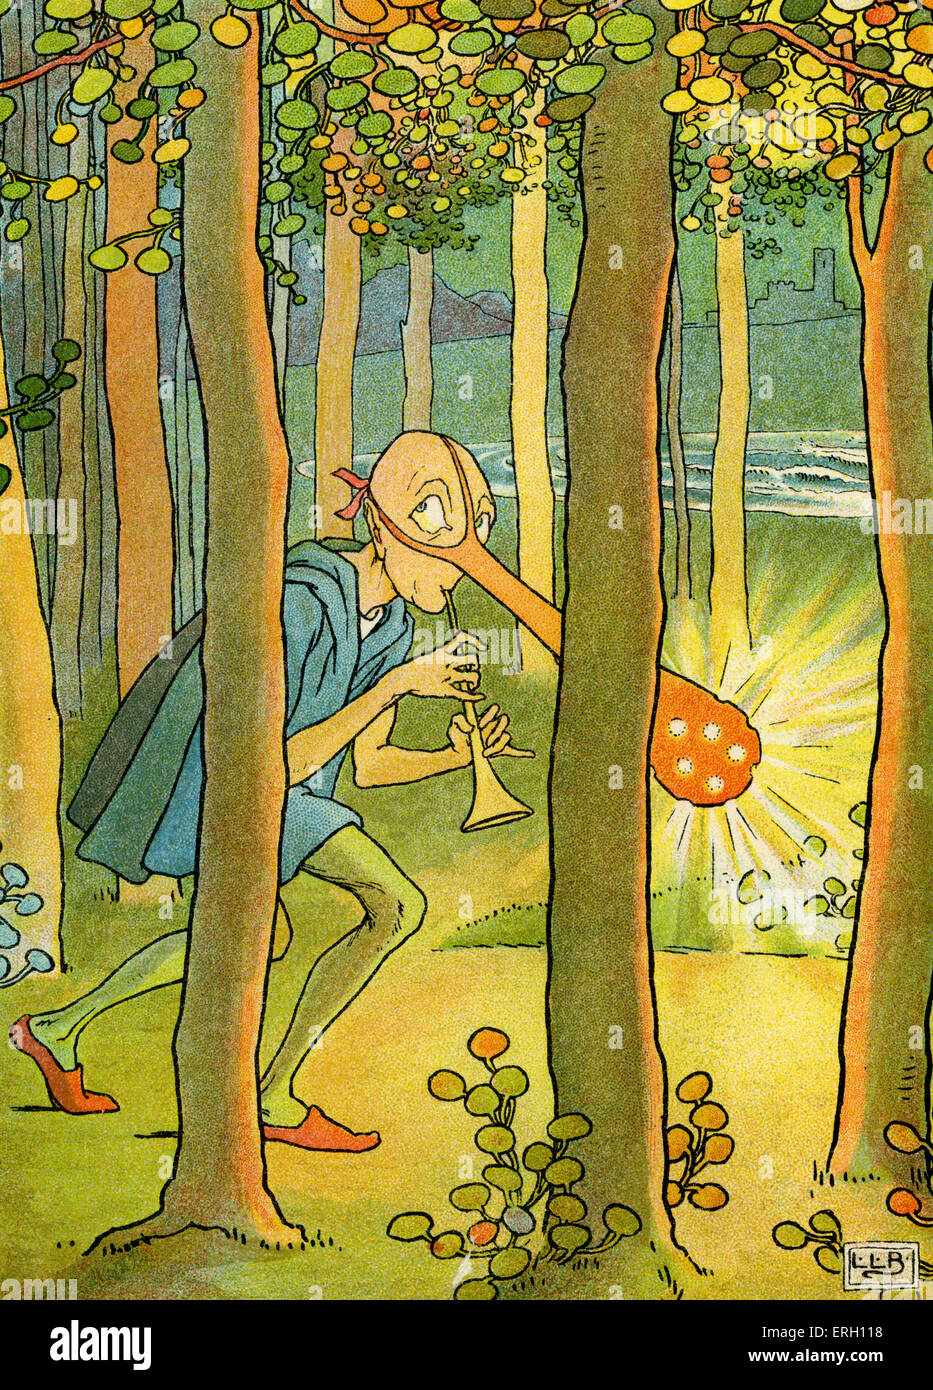 The Dong with a luminous nose by Edward Lear: 'The wandering Dong through the forest goes'. Illustration - Stock Image